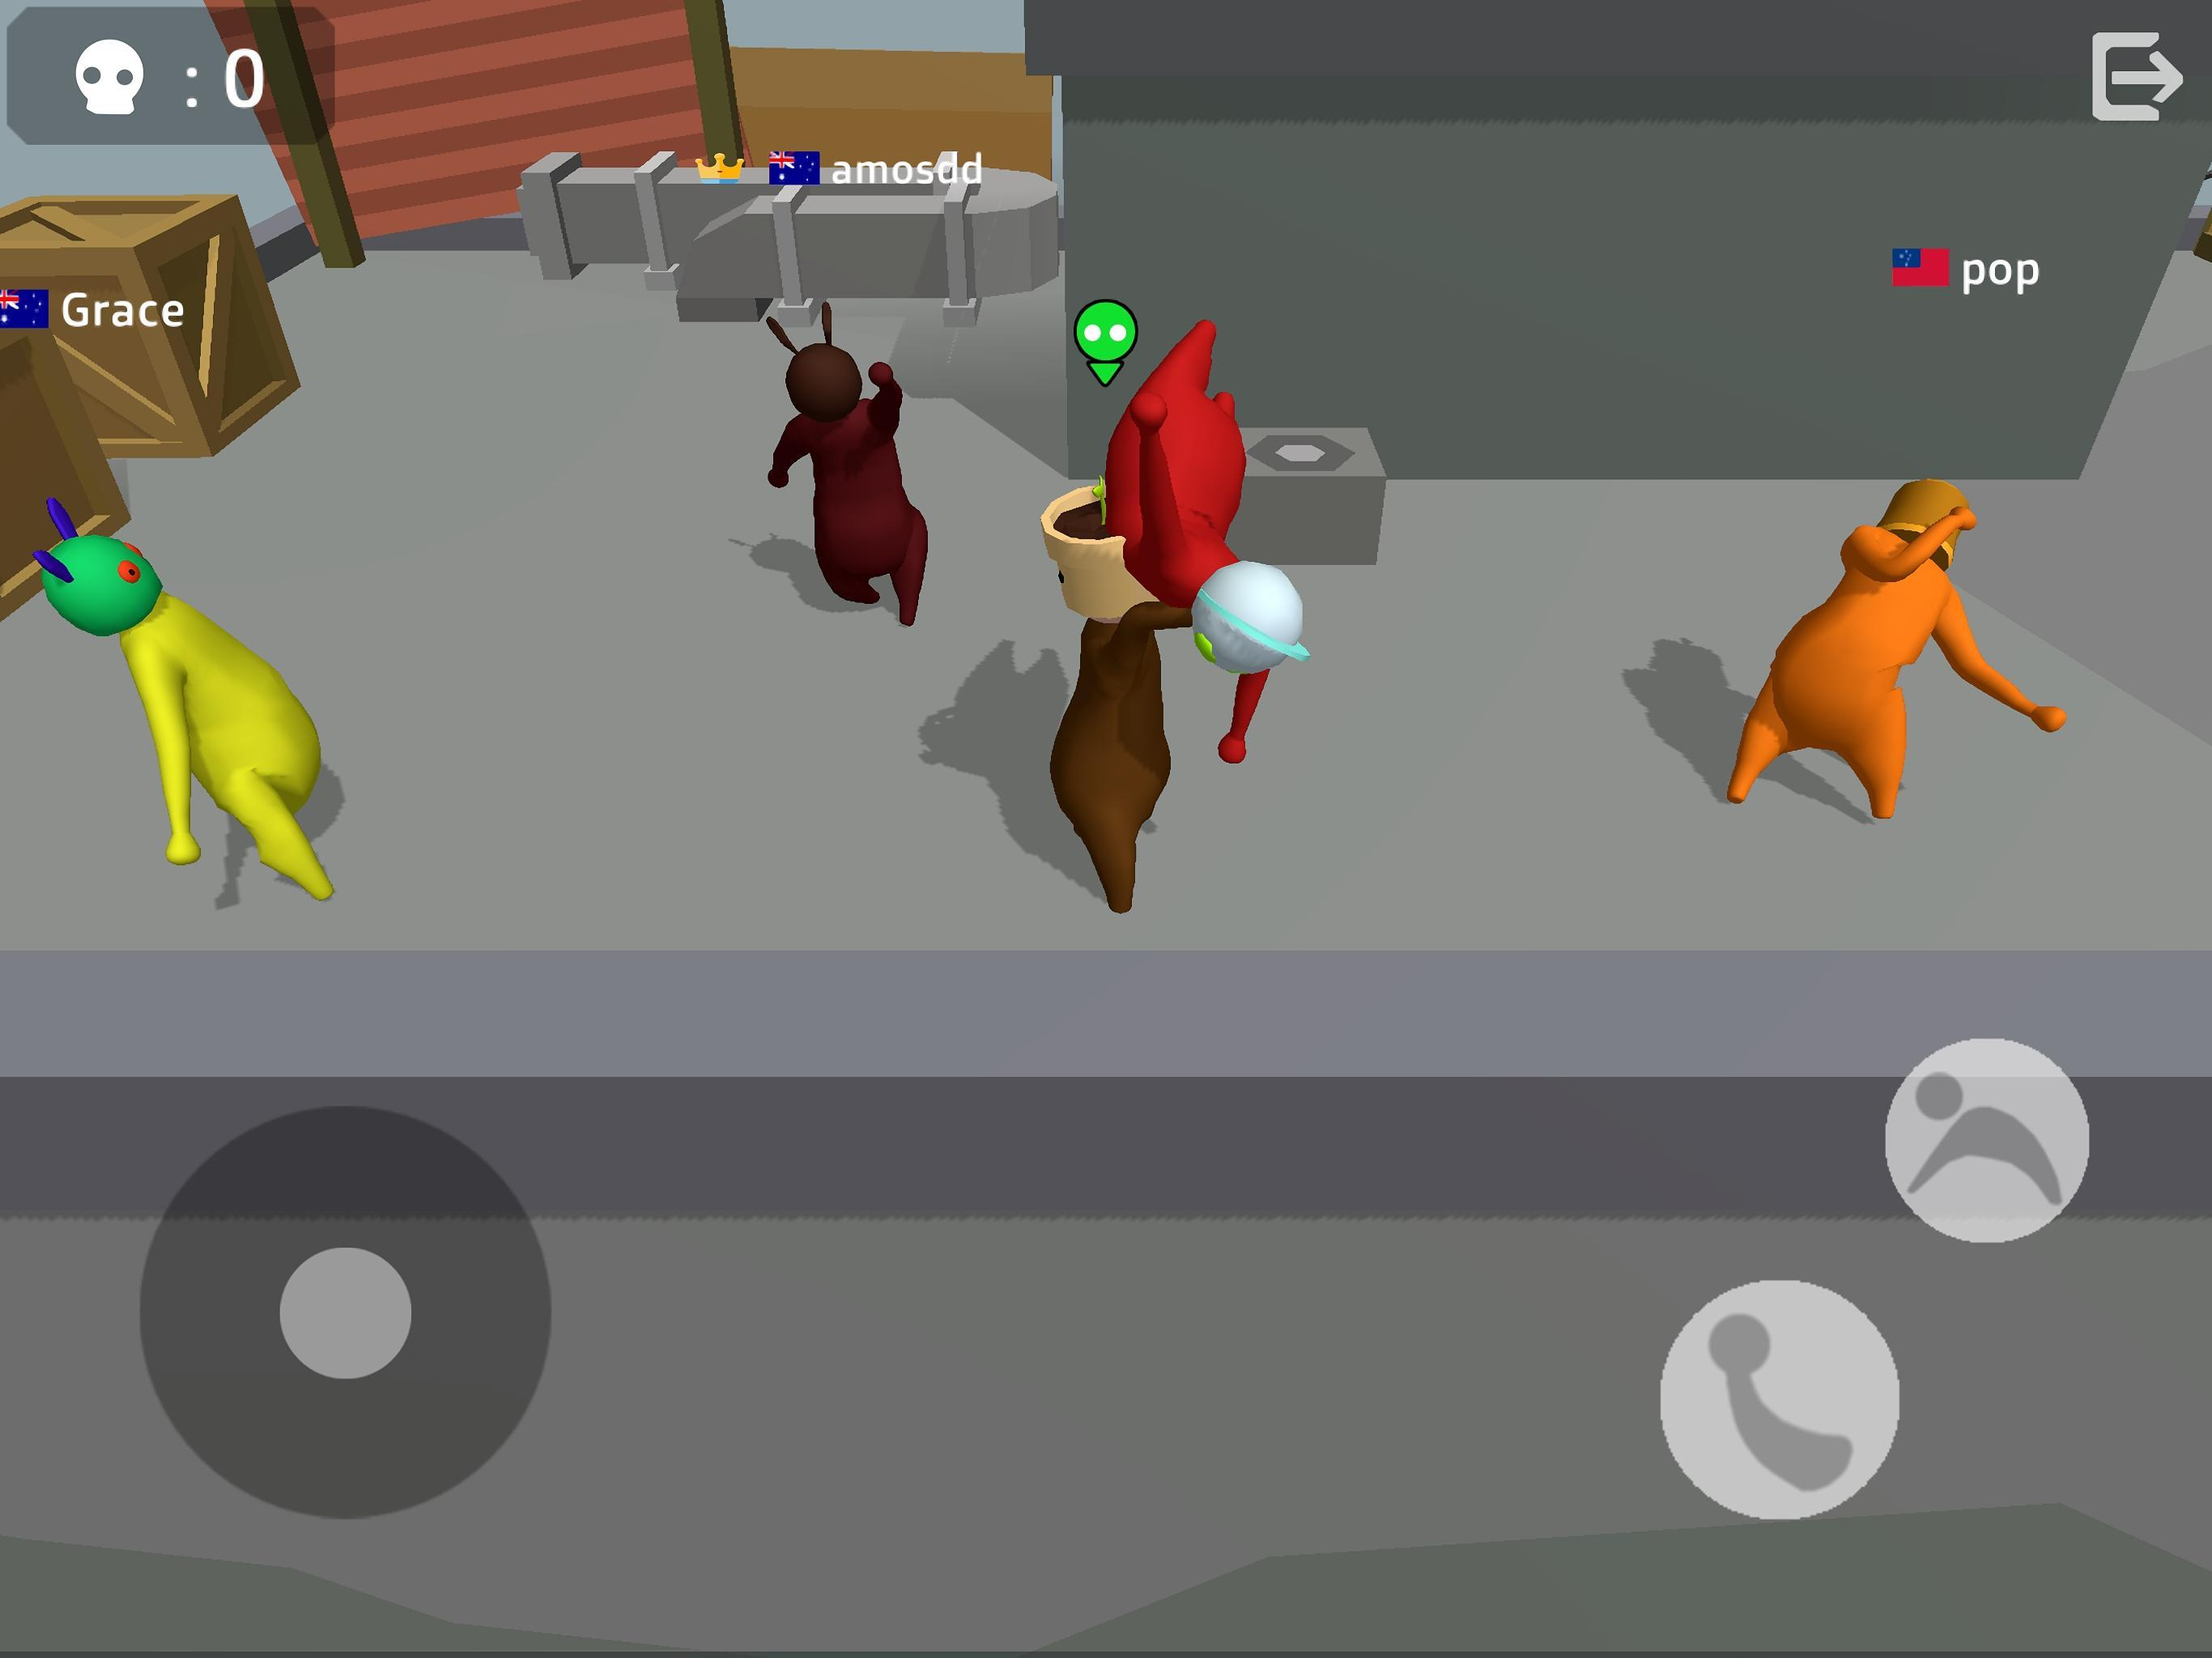 Noodleman.io - Fight Party Games 3.3 Screenshot 17